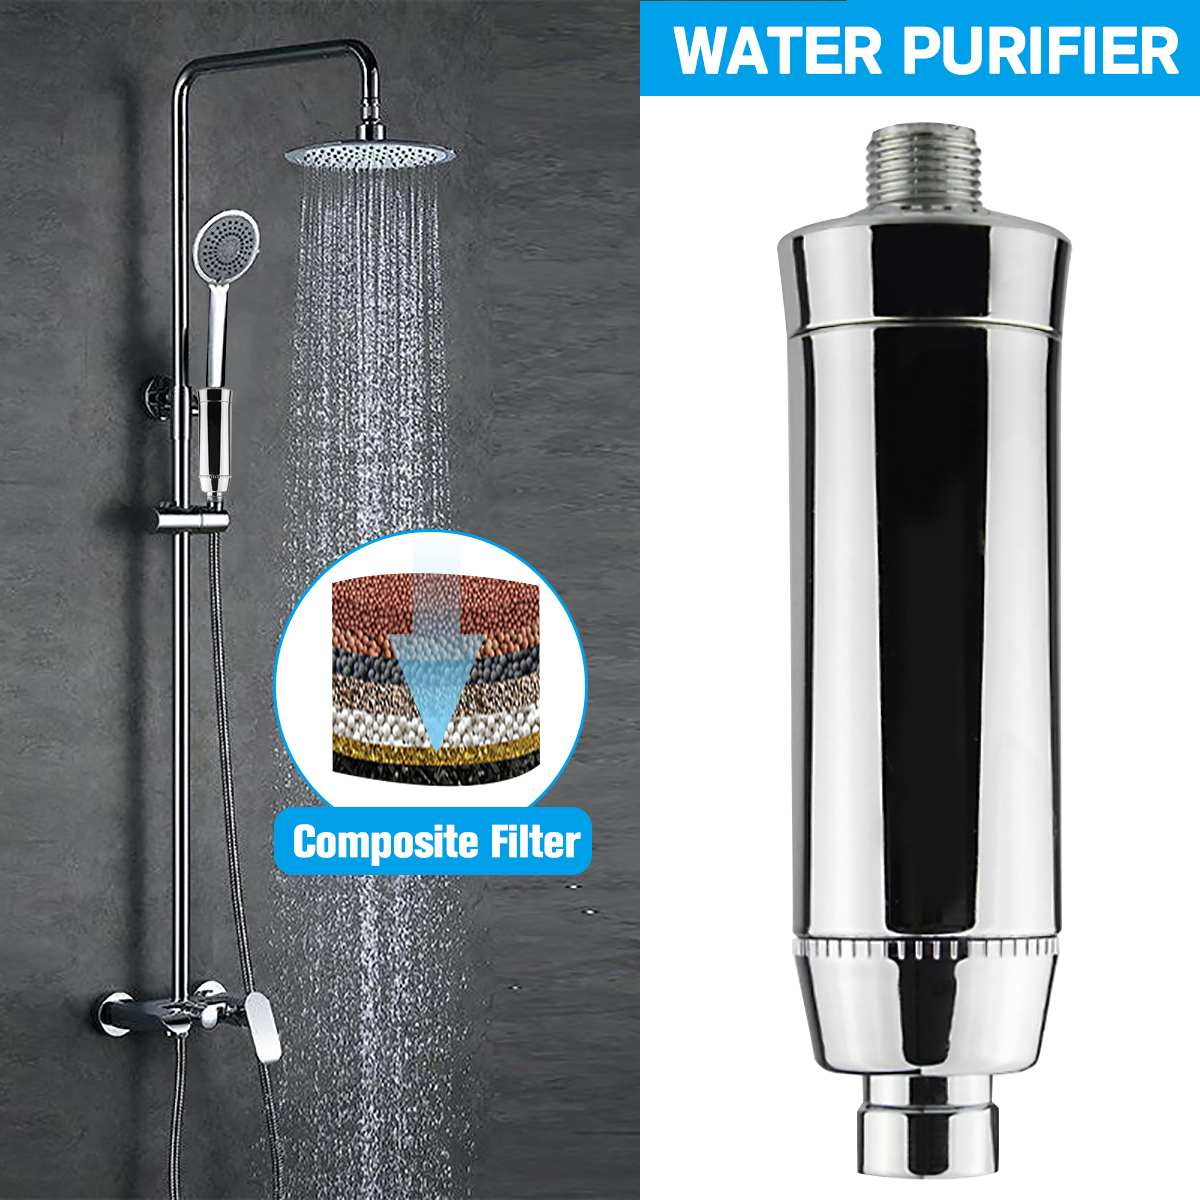 Home Water Purifier Chlorine Shower Filter Activated Carbon Faucets Purification Eliminates Chlorine Hard Water Bathroom